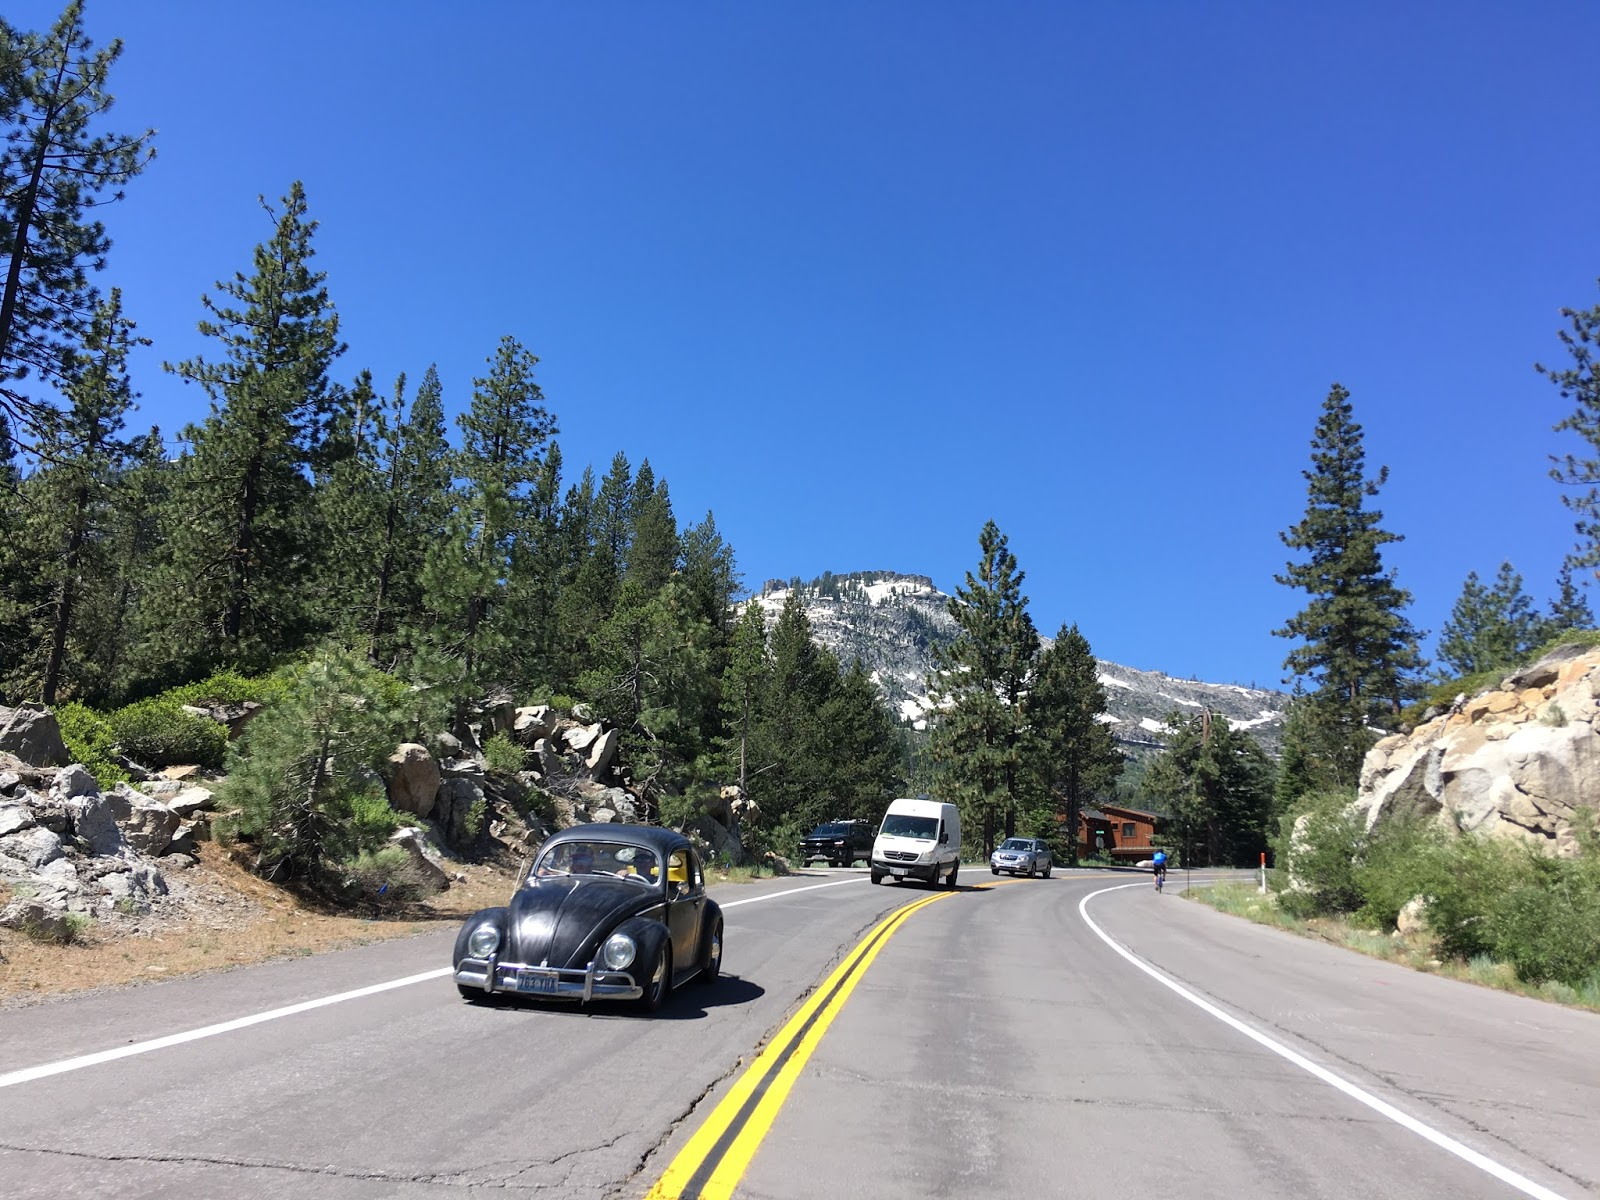 apparently there was some sort of volkswagen cruise going on that became very apparent at the start of the climb westward towards donner pass